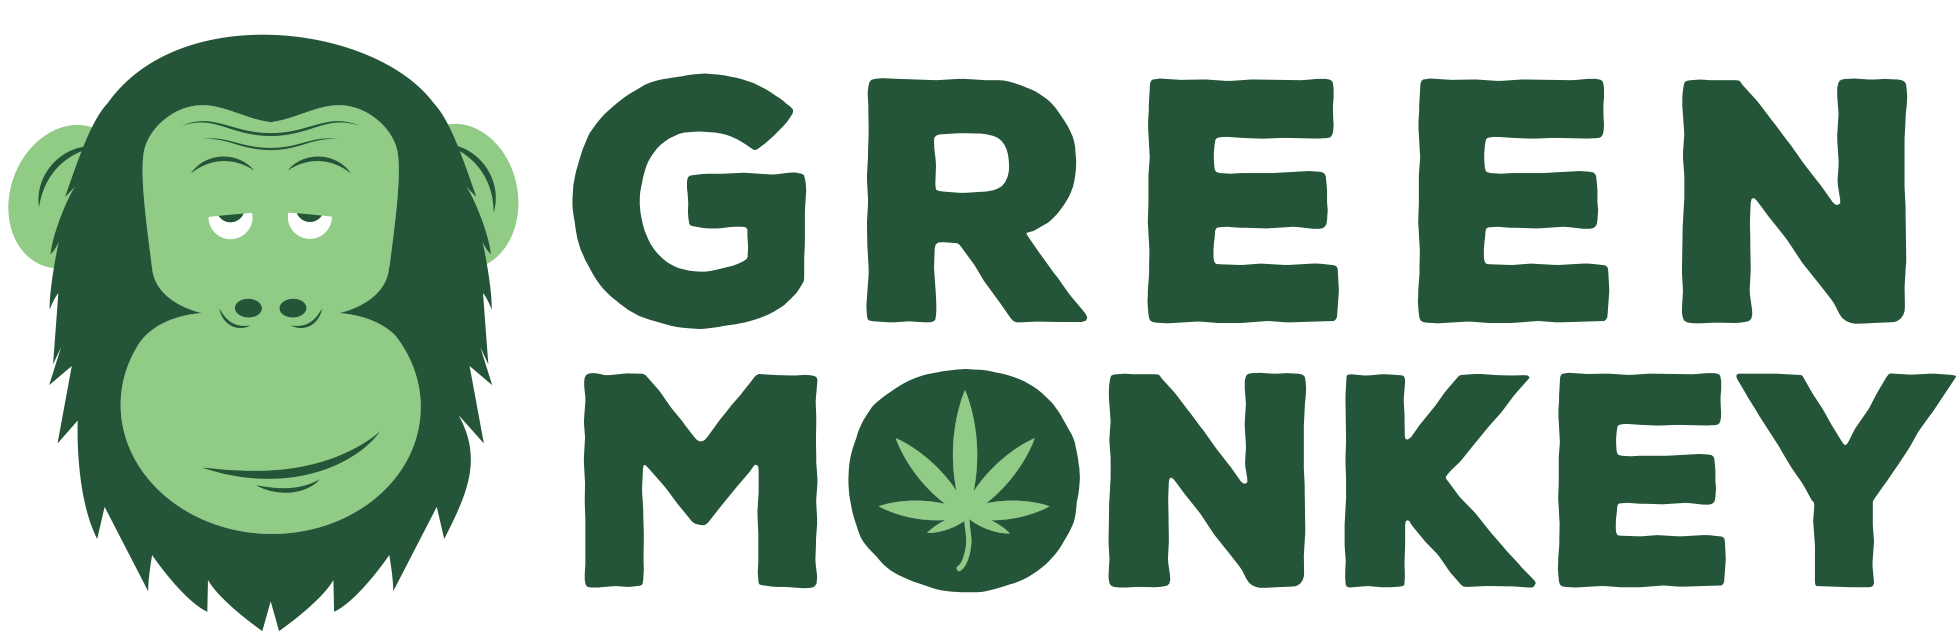 Green Monkey Shop